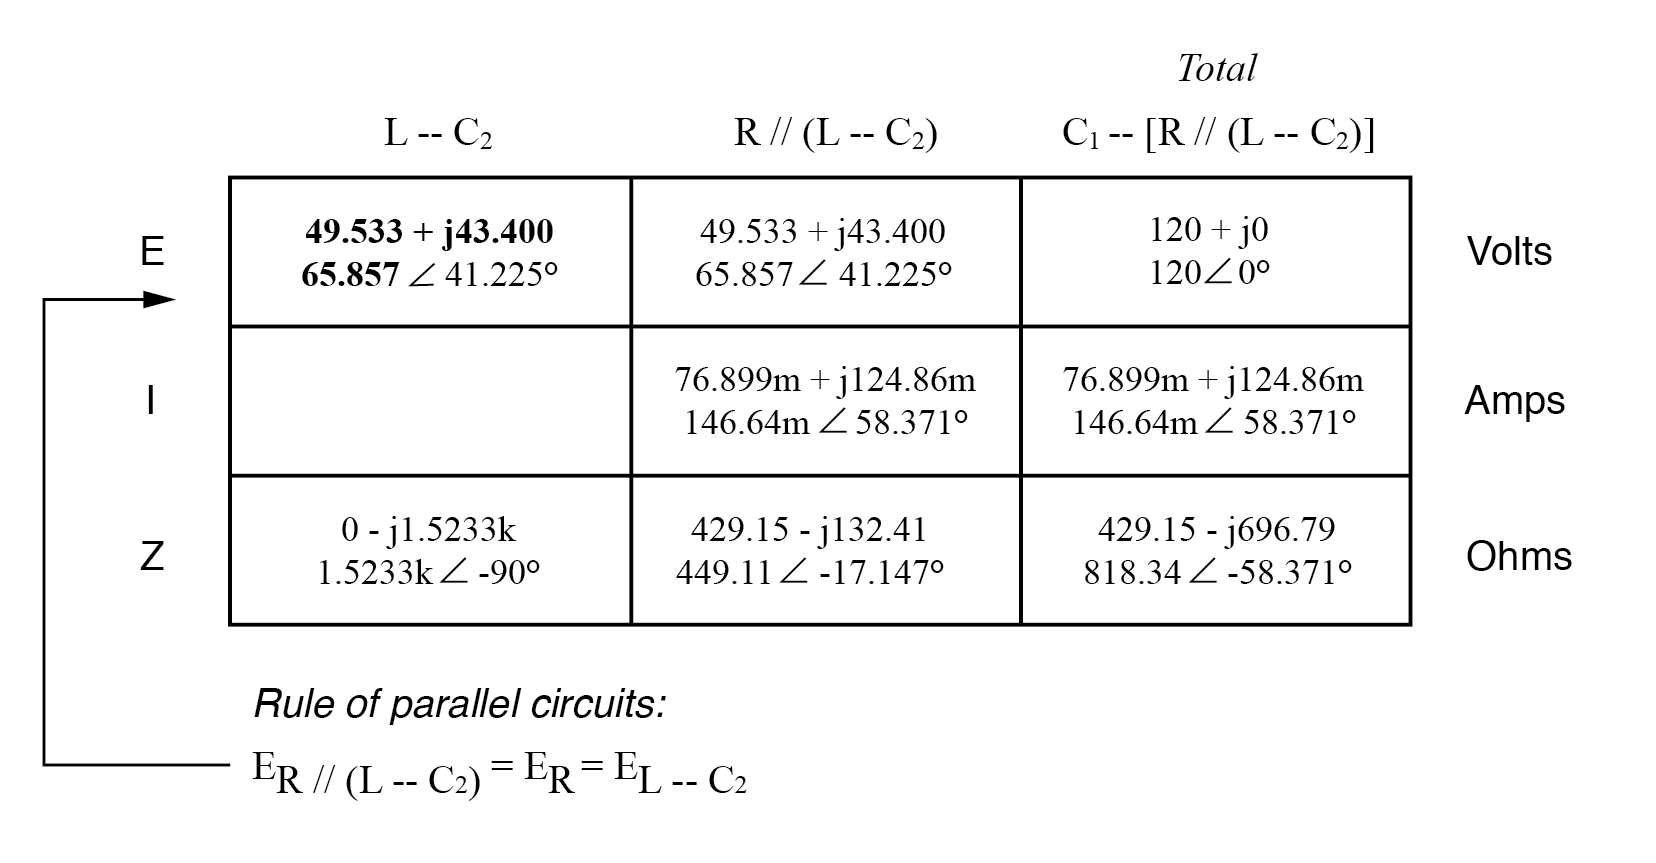 rule of series circuits table 3